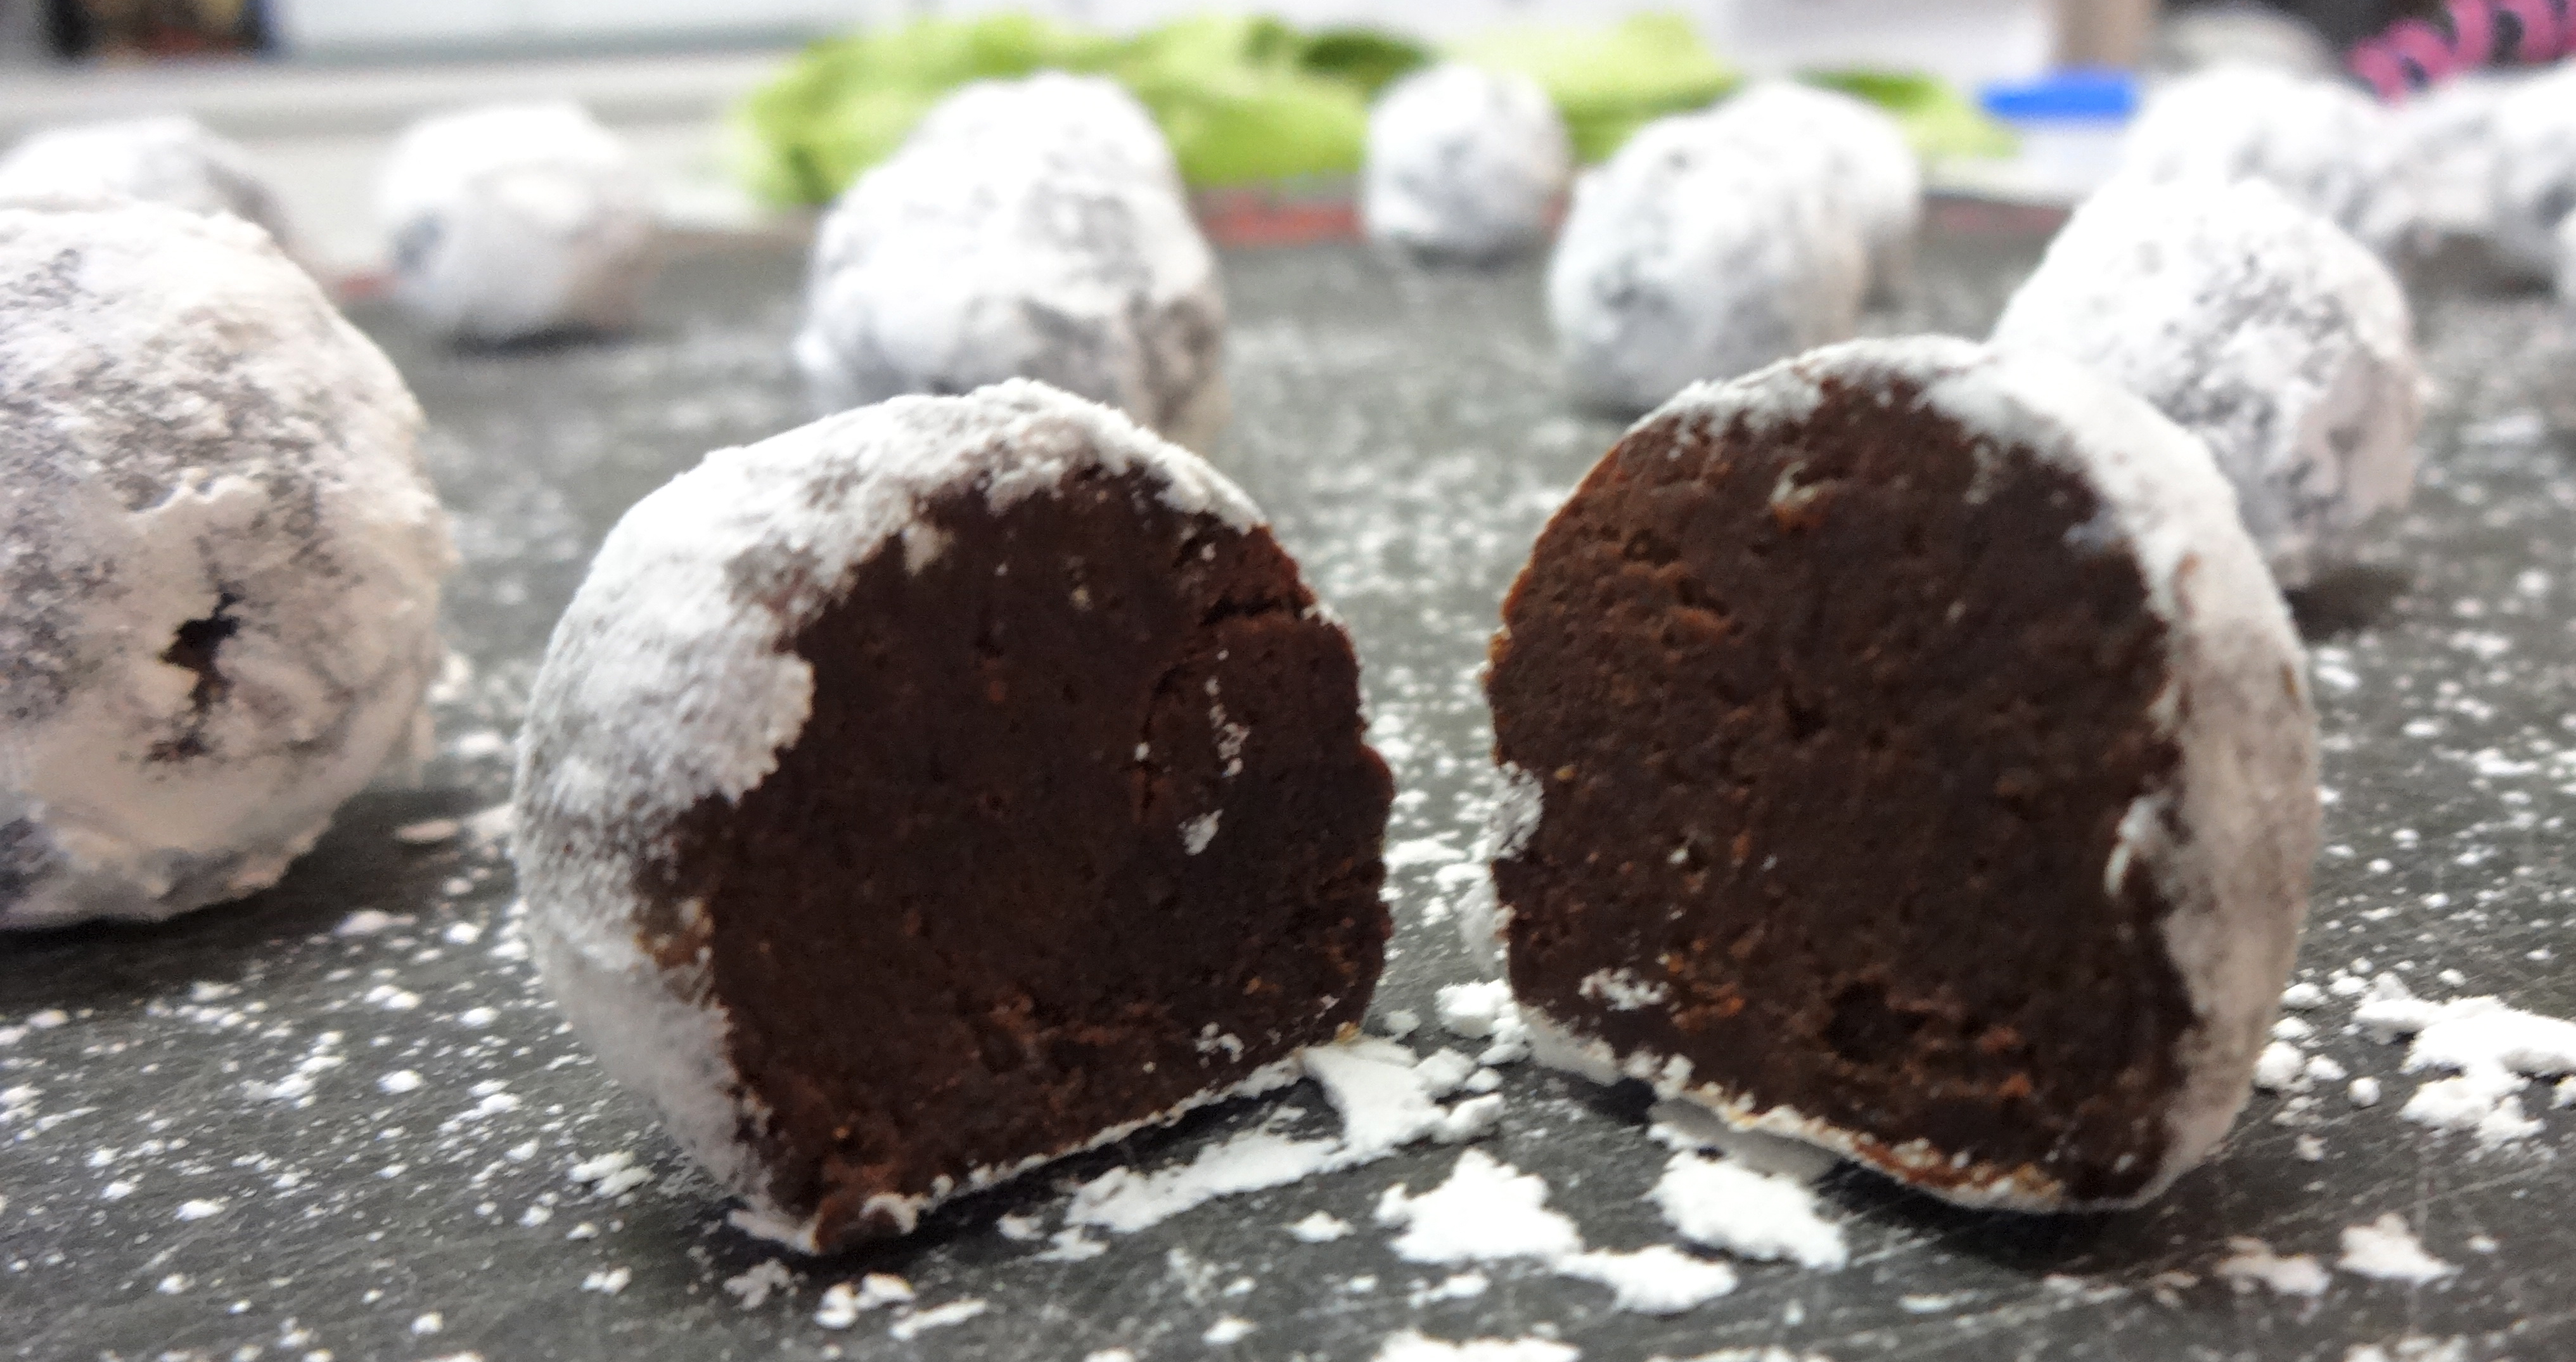 Chocolate Brandy Truffles